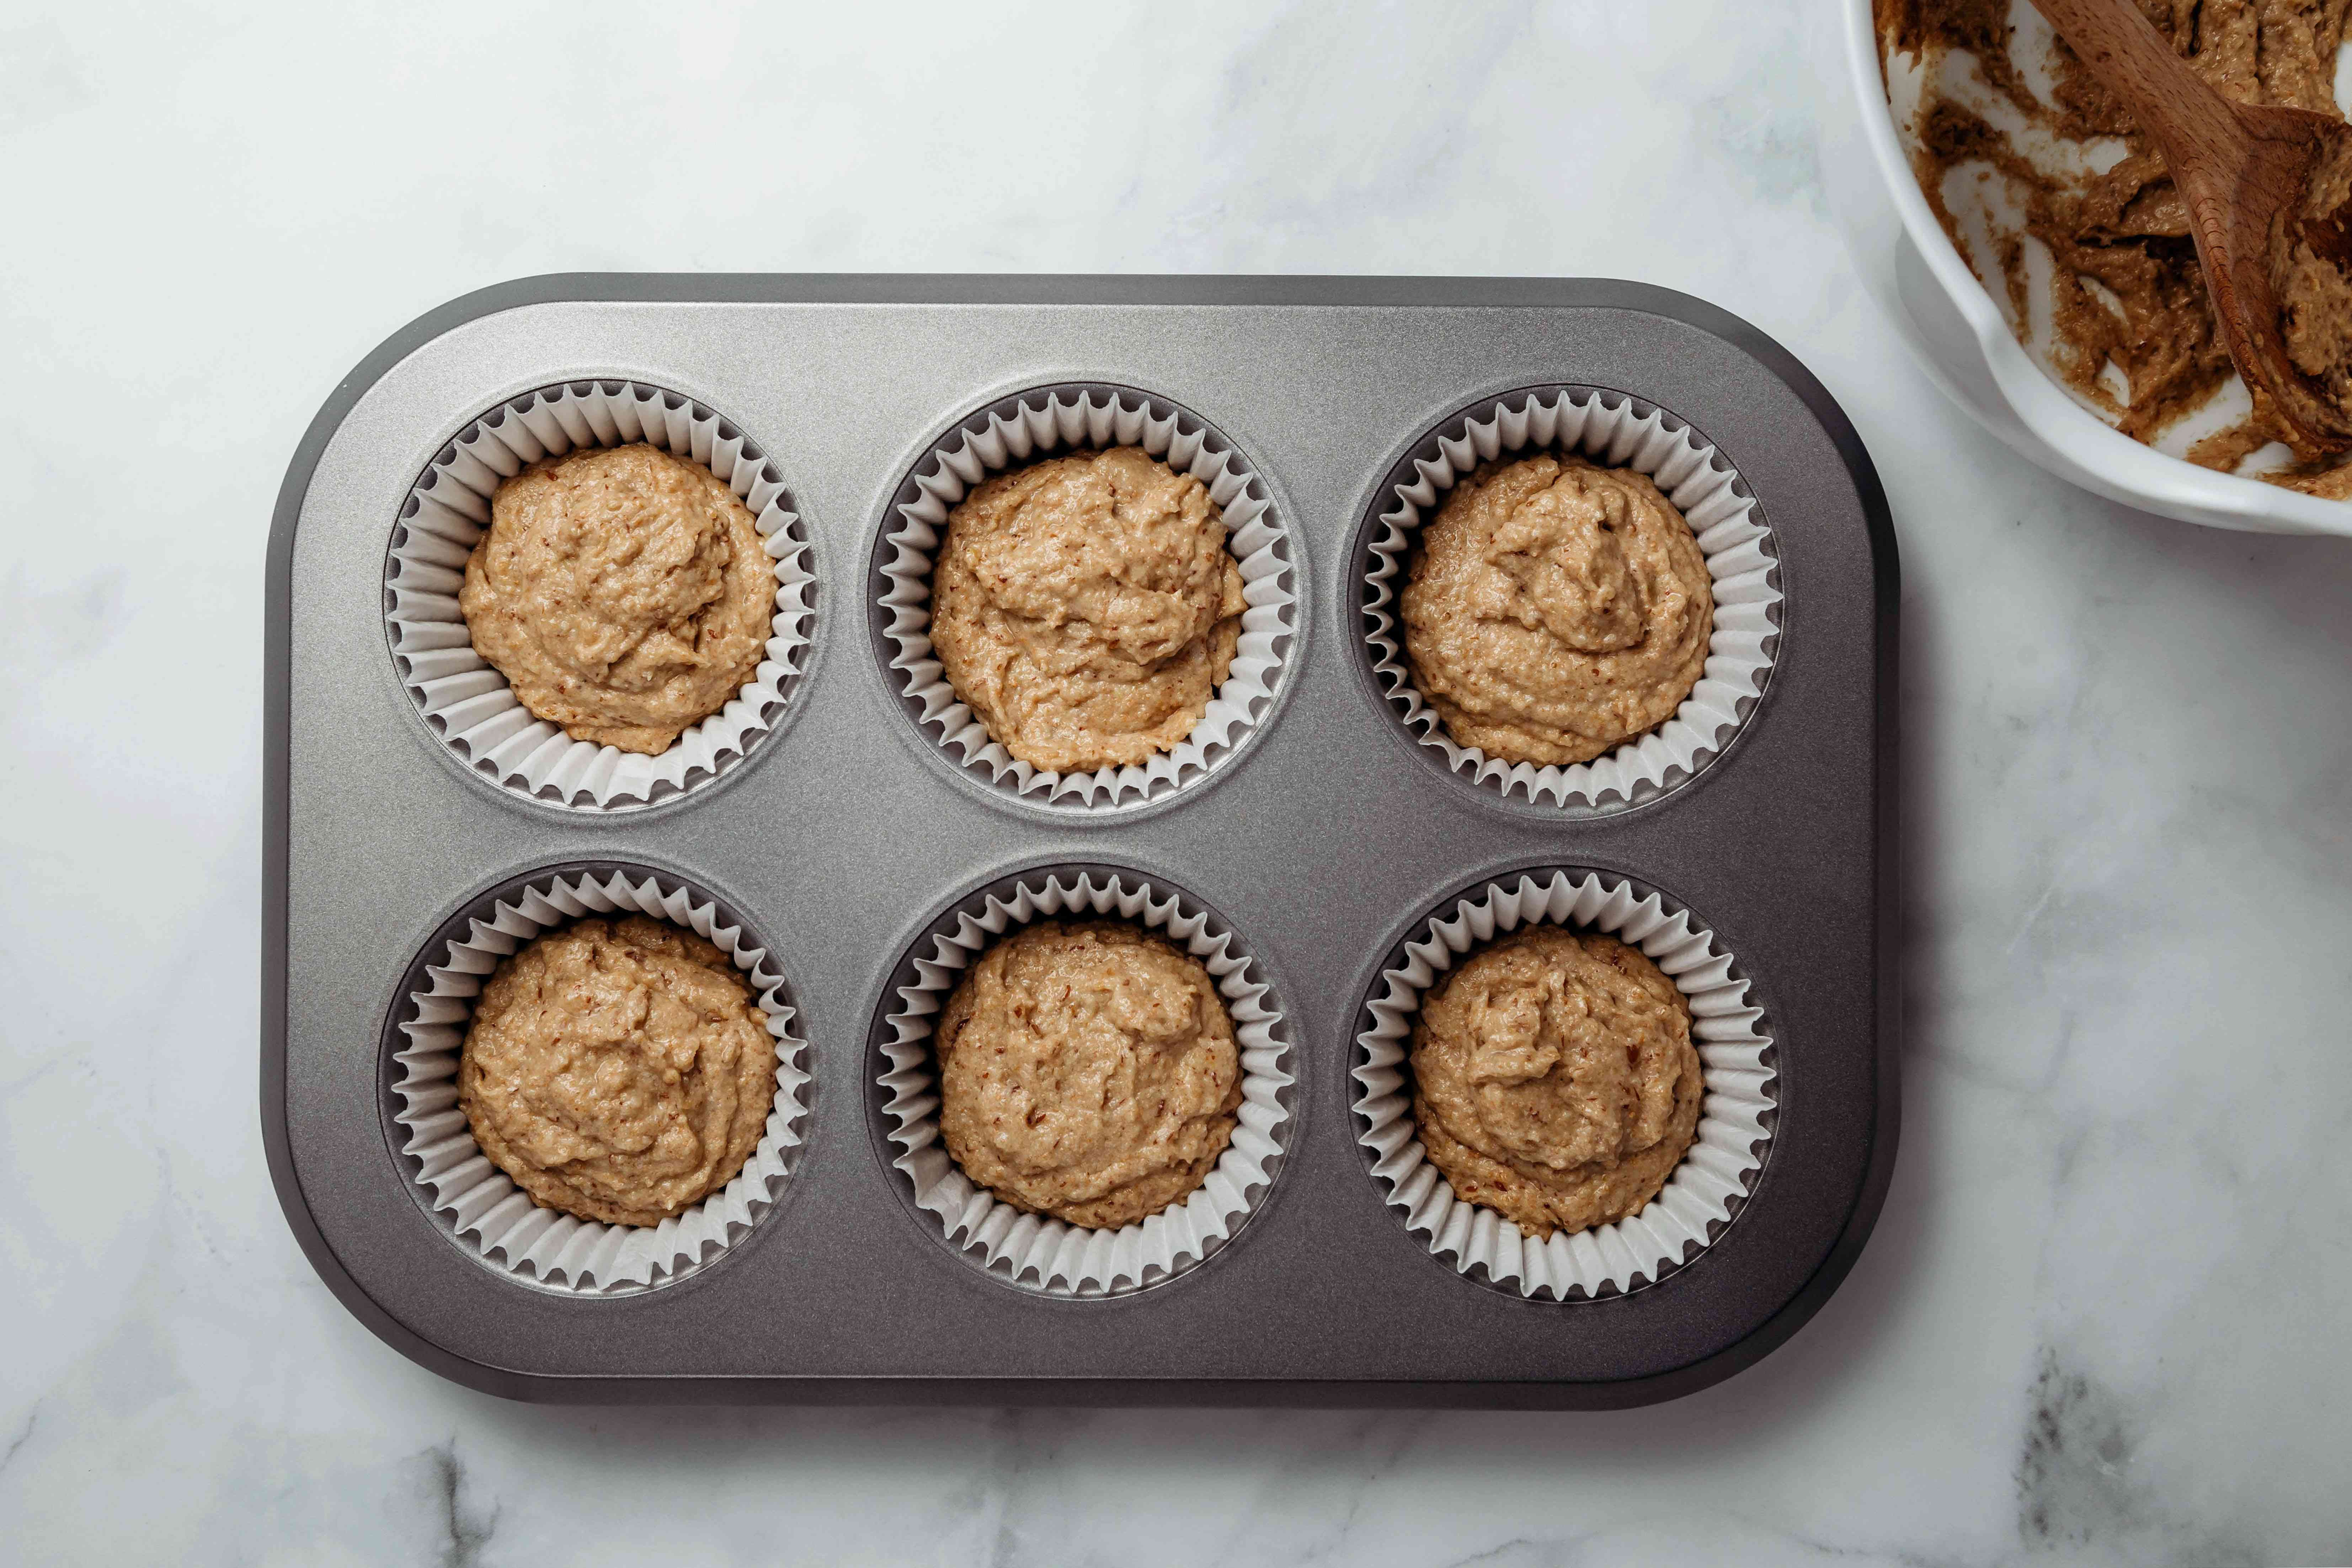 Portion the batter into the prepared muffin pan